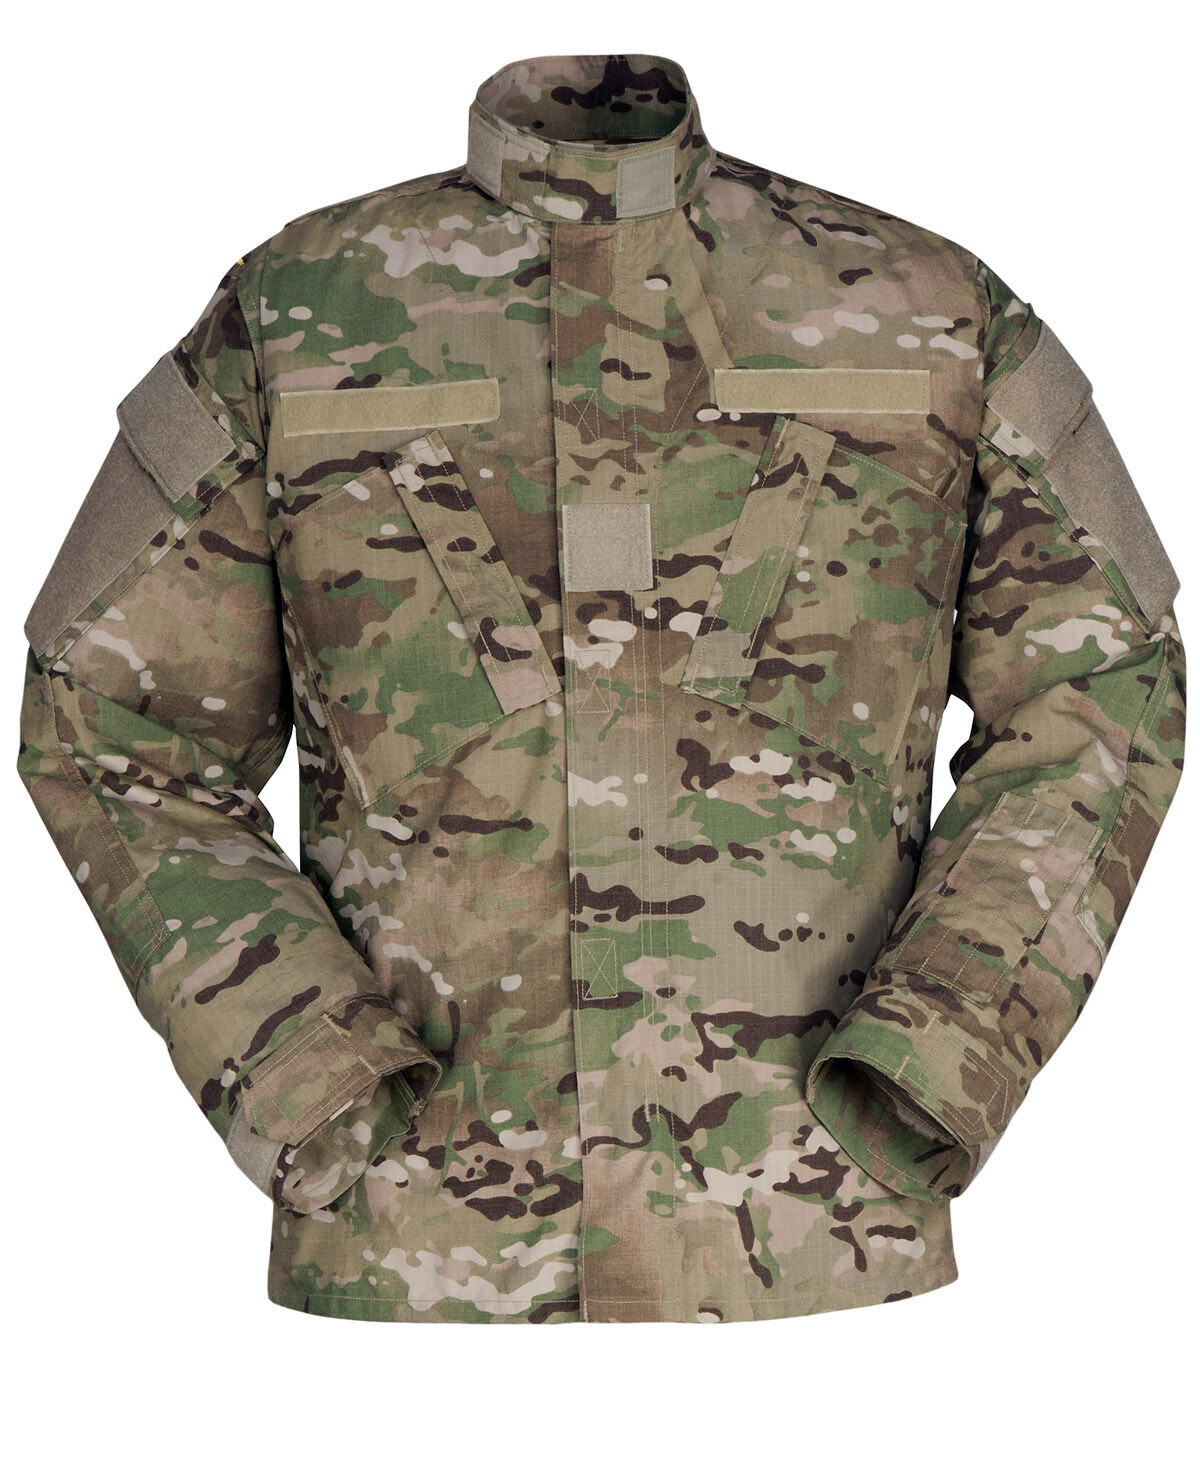 MultiCam Camo NIR Compliat ACU Tactical Uniform Shirt by PROPPER F5459